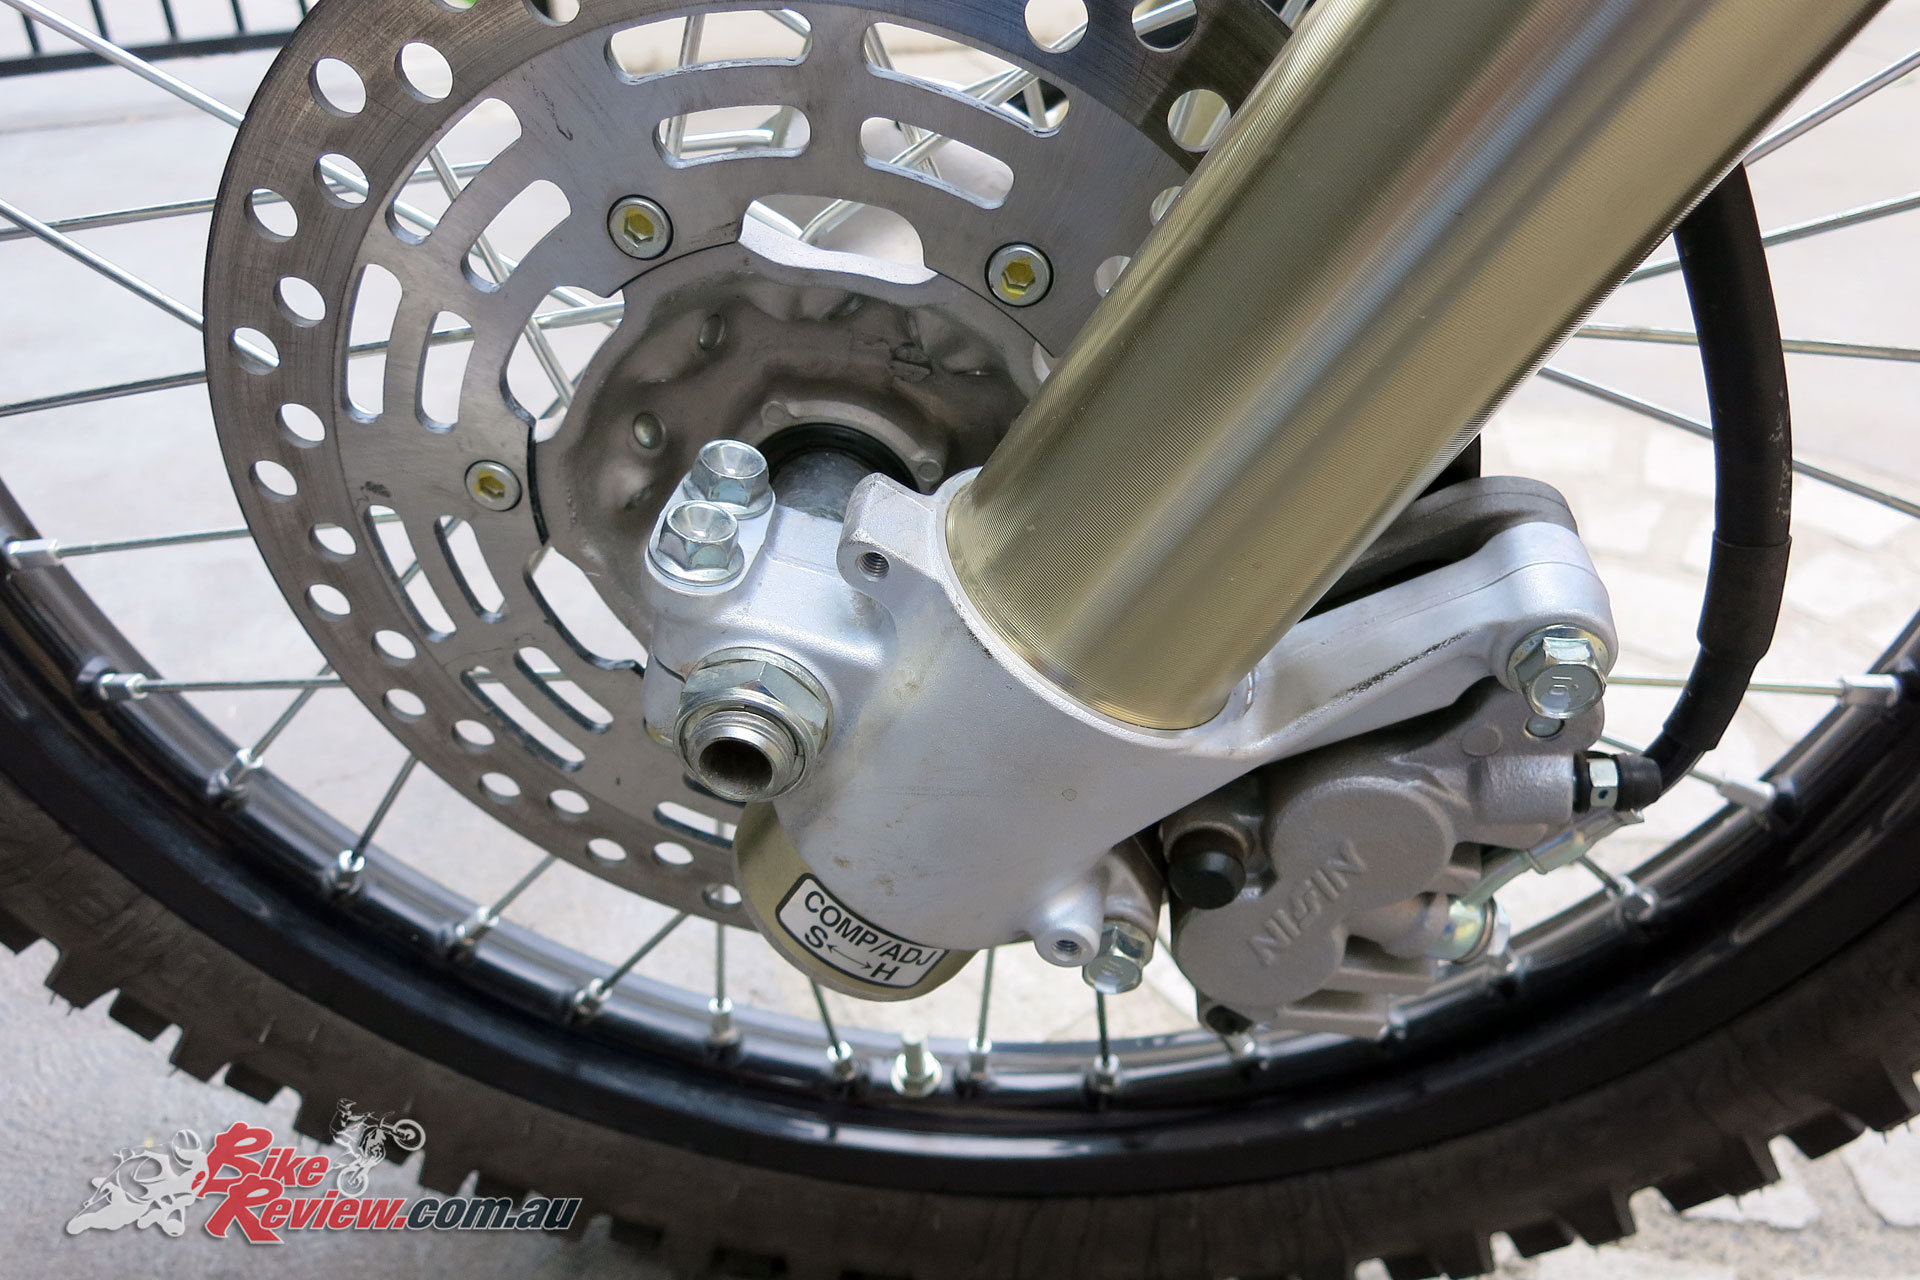 Conventional 49mm Showa telescopic forks are fully adjustable